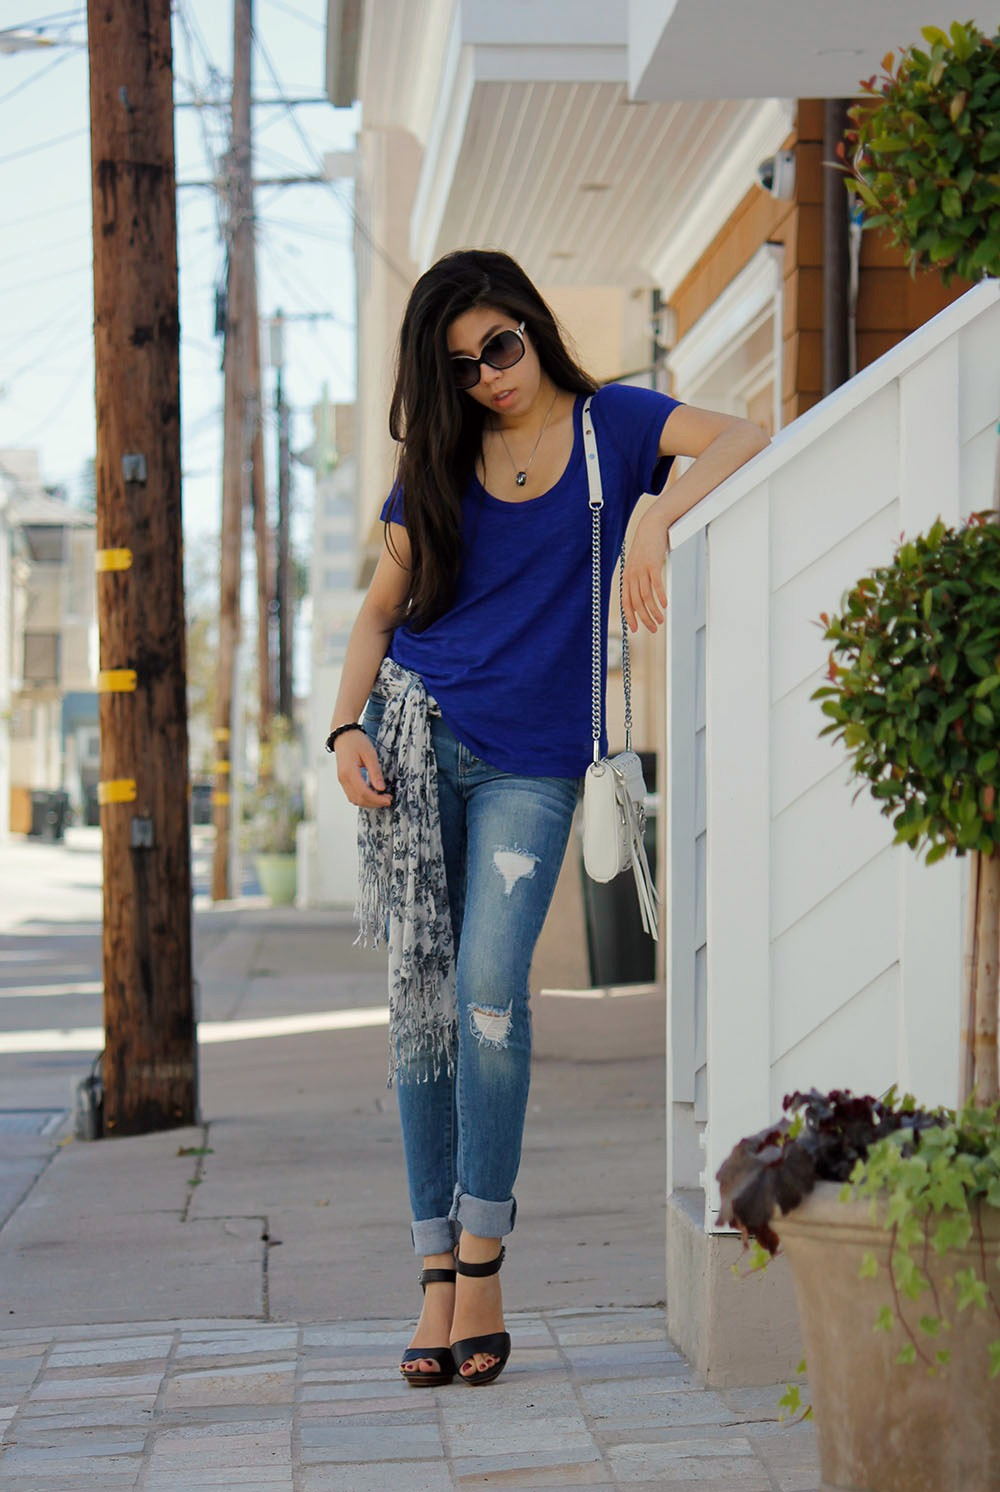 California Fashion Blogger _ Casual Cool Outfit _ Laid Back California Style _ LA Blogger _ Adrienne Nguyen _ Invictus